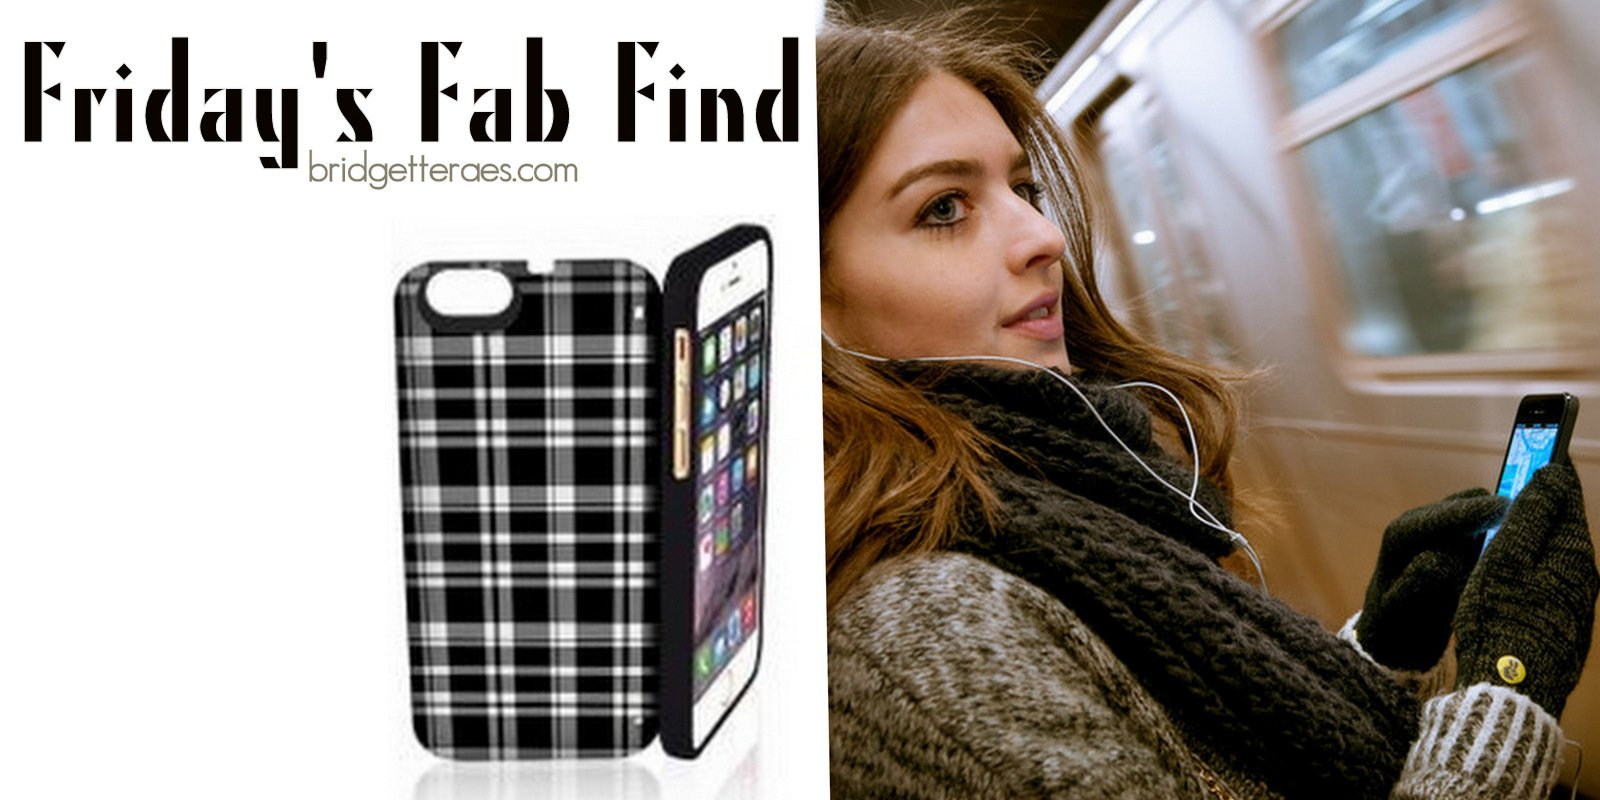 Friday's Fab Find: EYN Case and Glovely